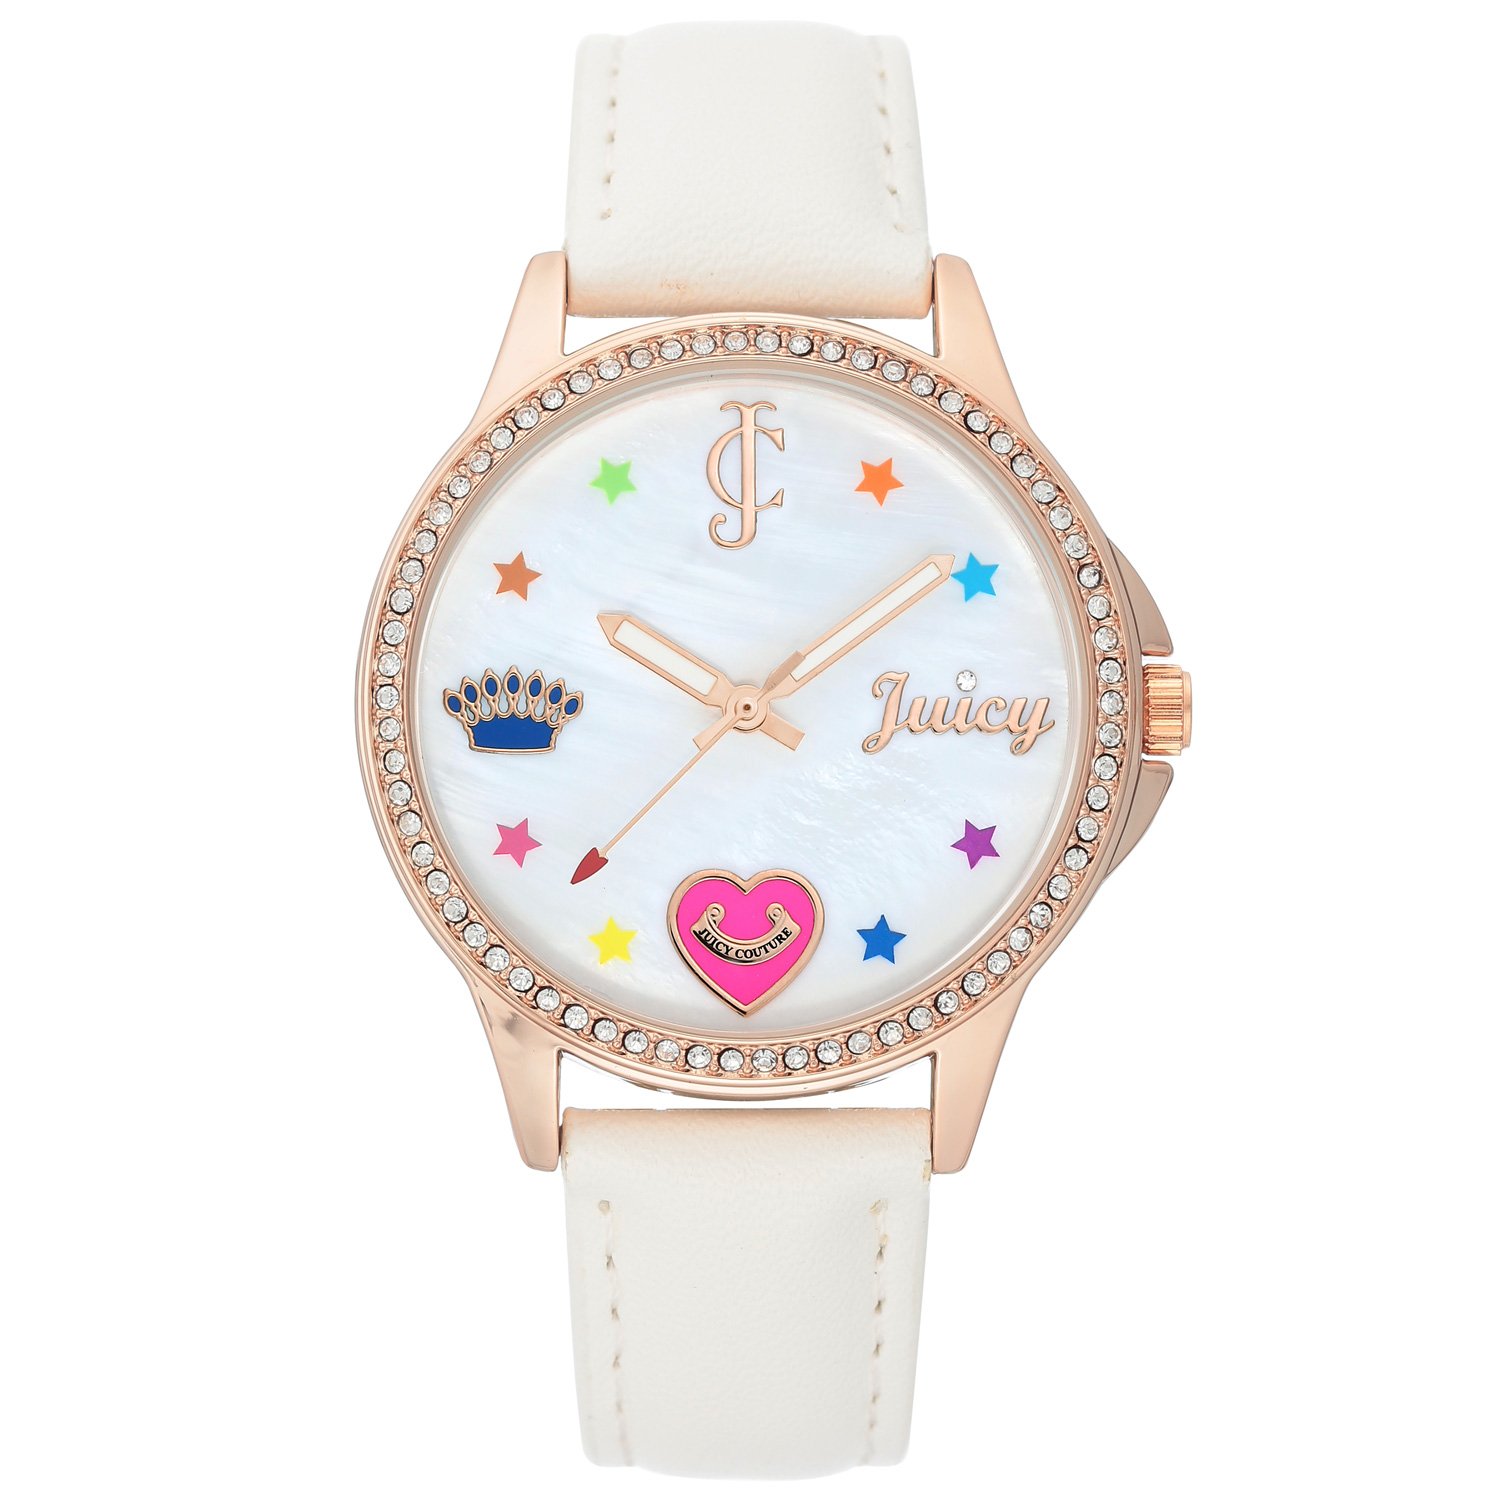 Juicy Couture Watch JC/1106RGWT White